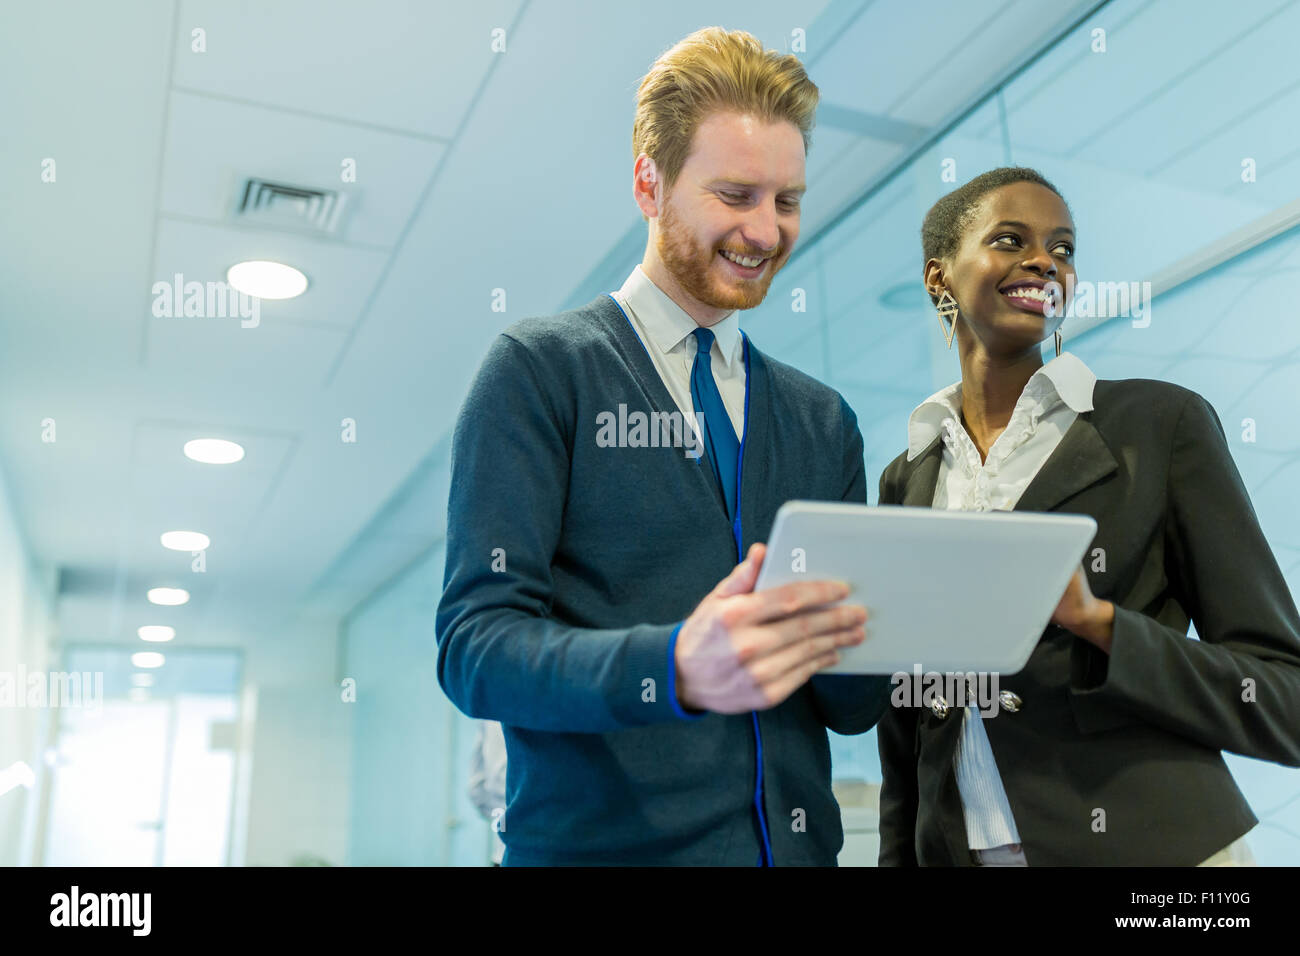 Business partners and colleagues discussing ideas displayed on a tablet on an office corridor - Stock Image